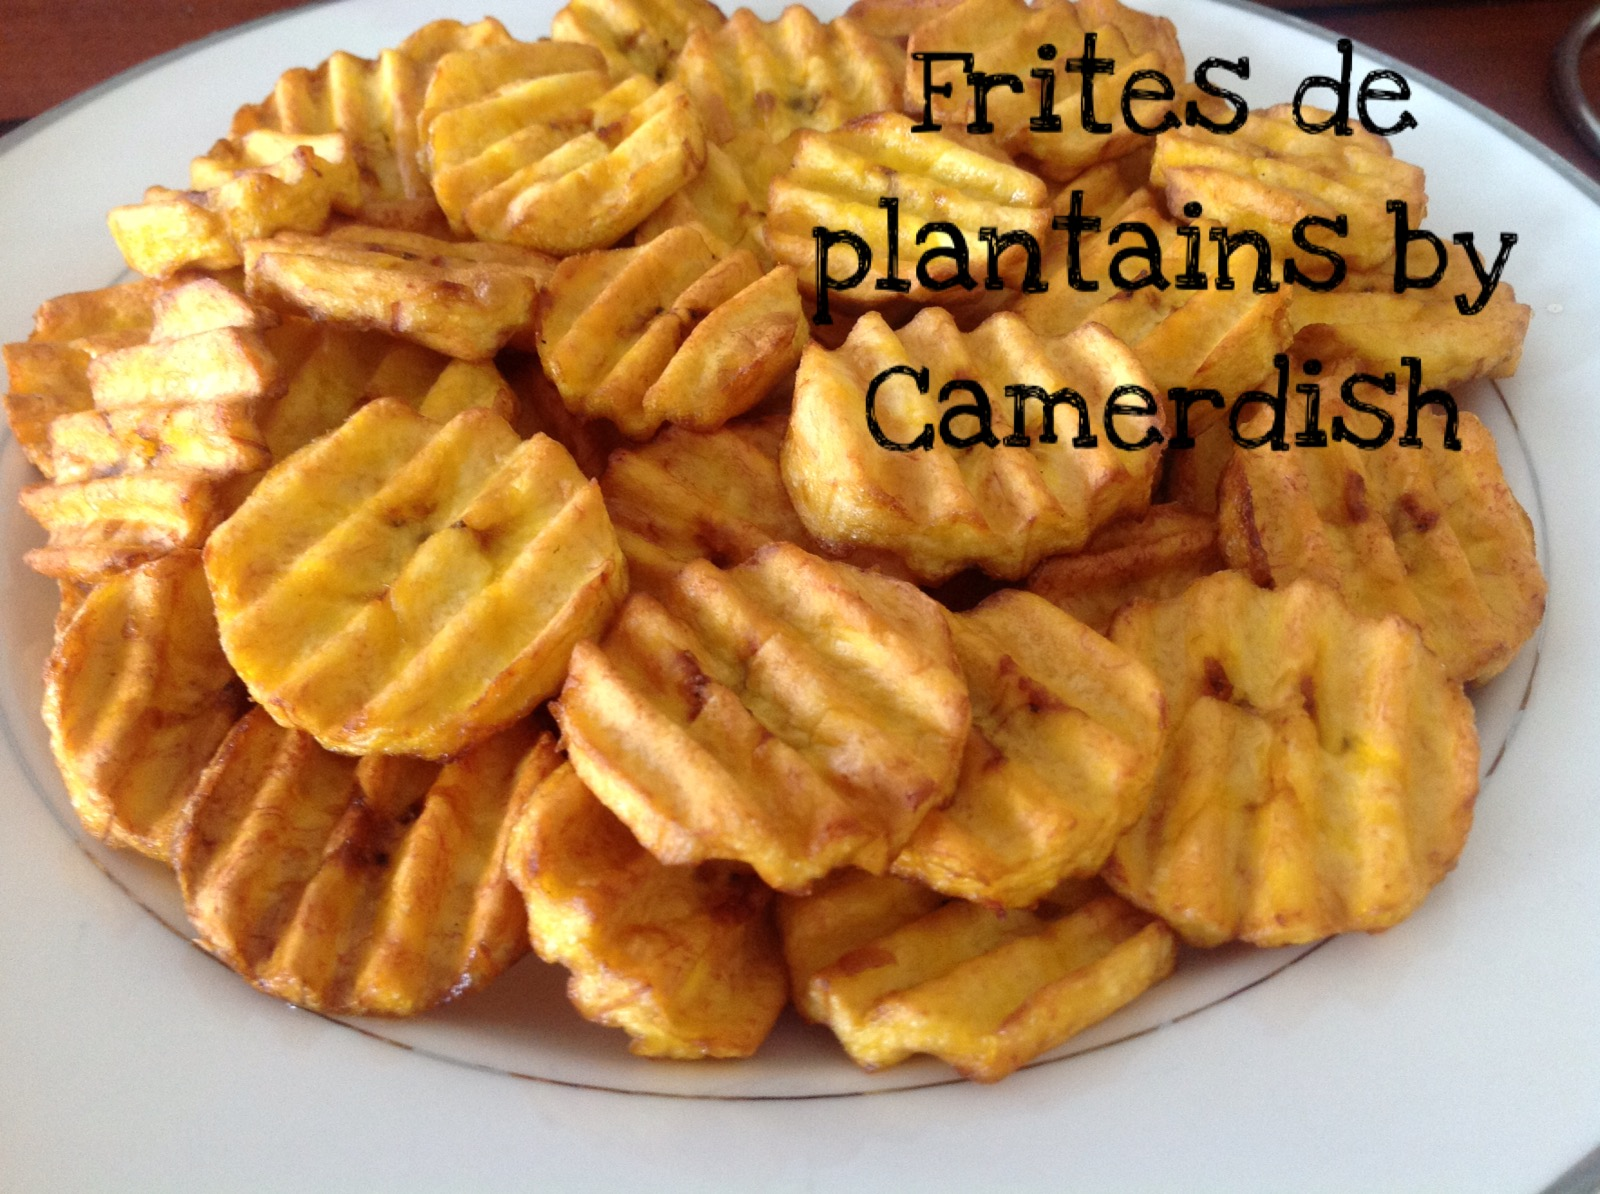 Frites de plantains mûrs